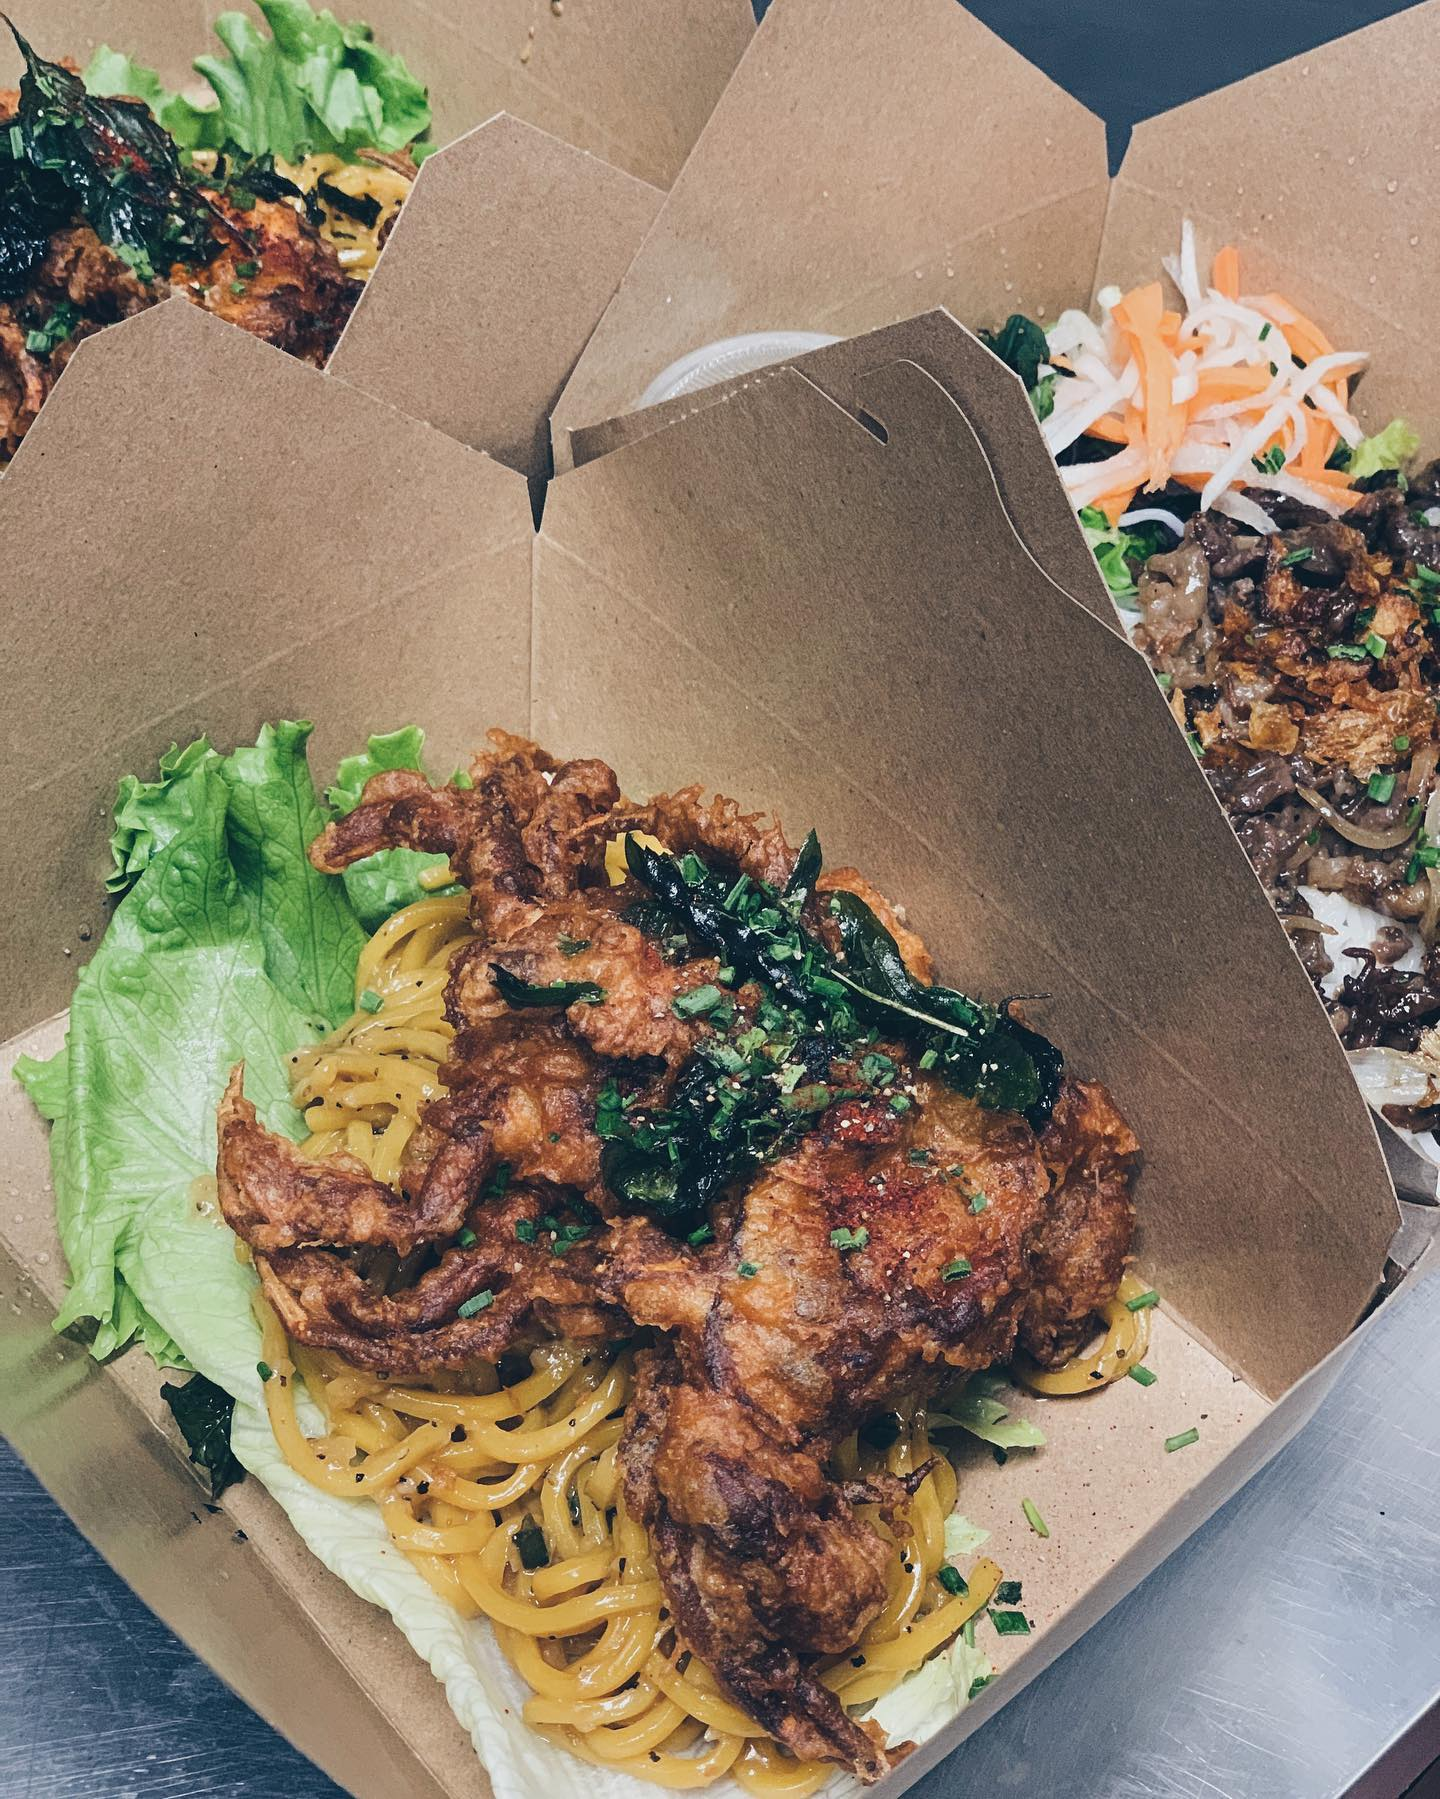 Soft shell crab with black pepper noodles at Ba Sa in a takeout container